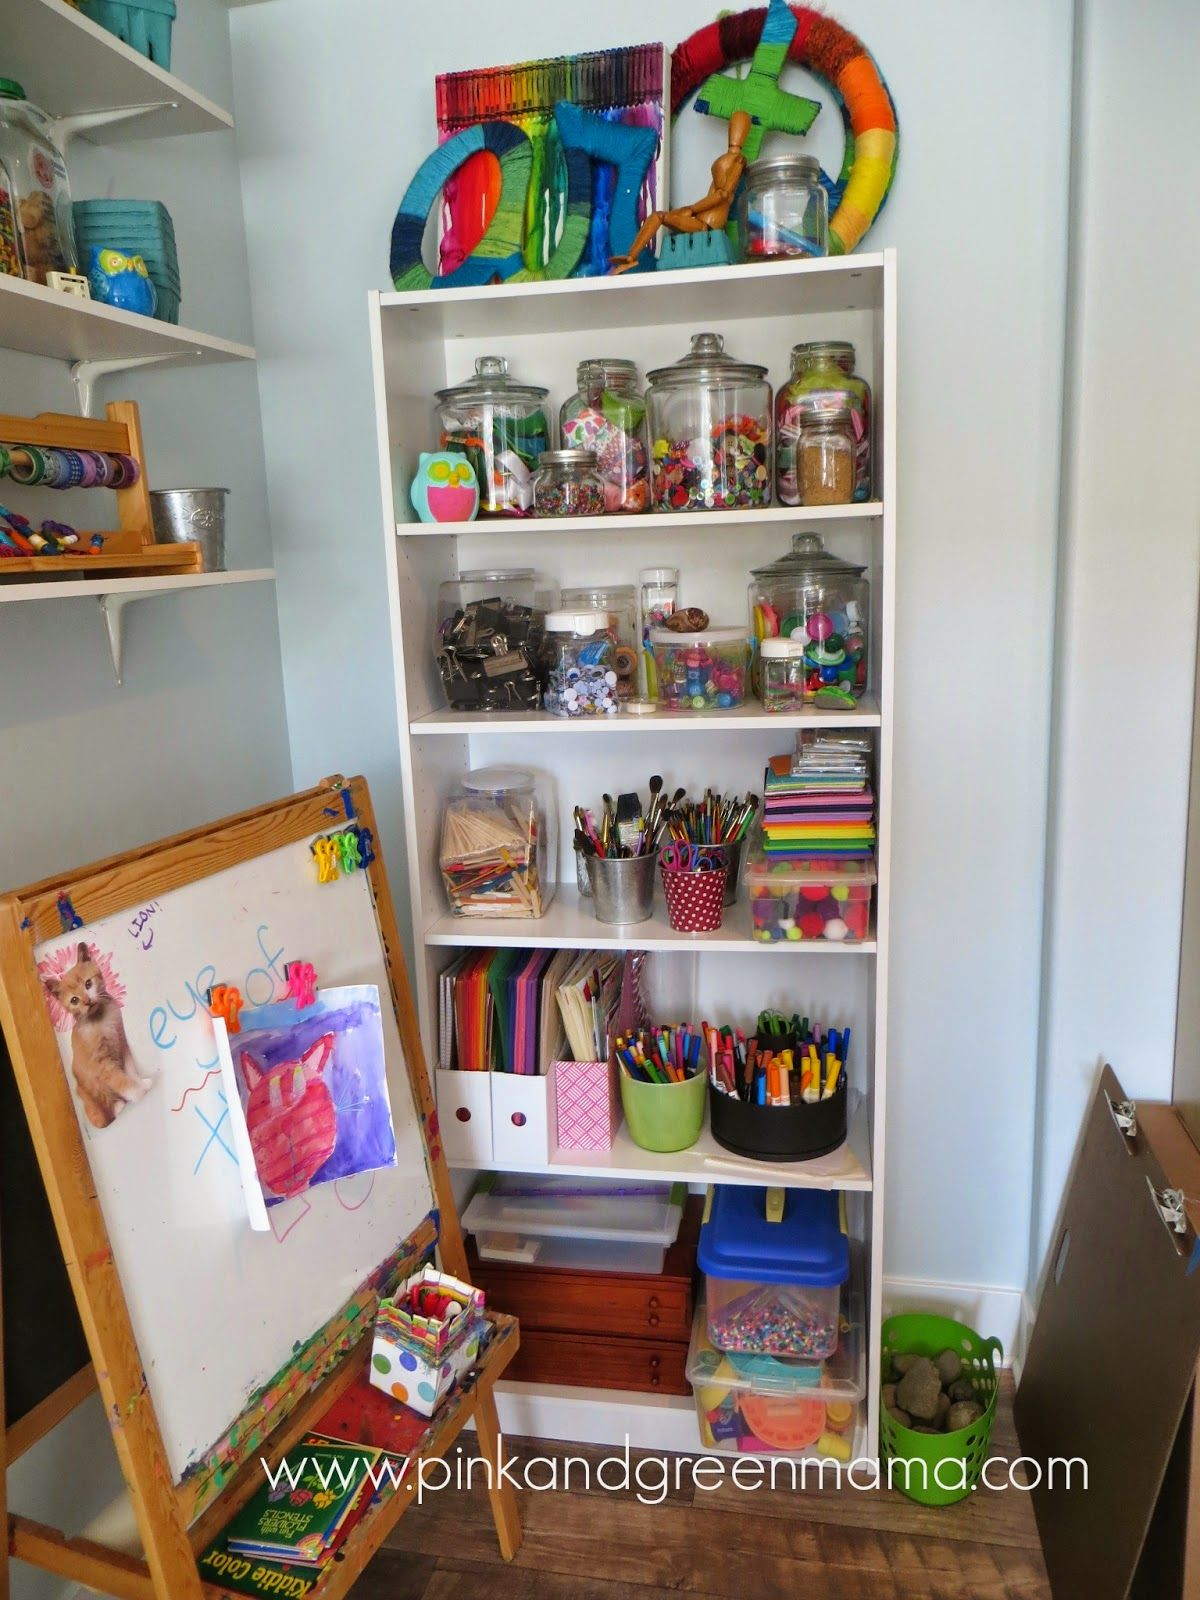 Self Serve Kids Art Area With Easy To Access Supplies On